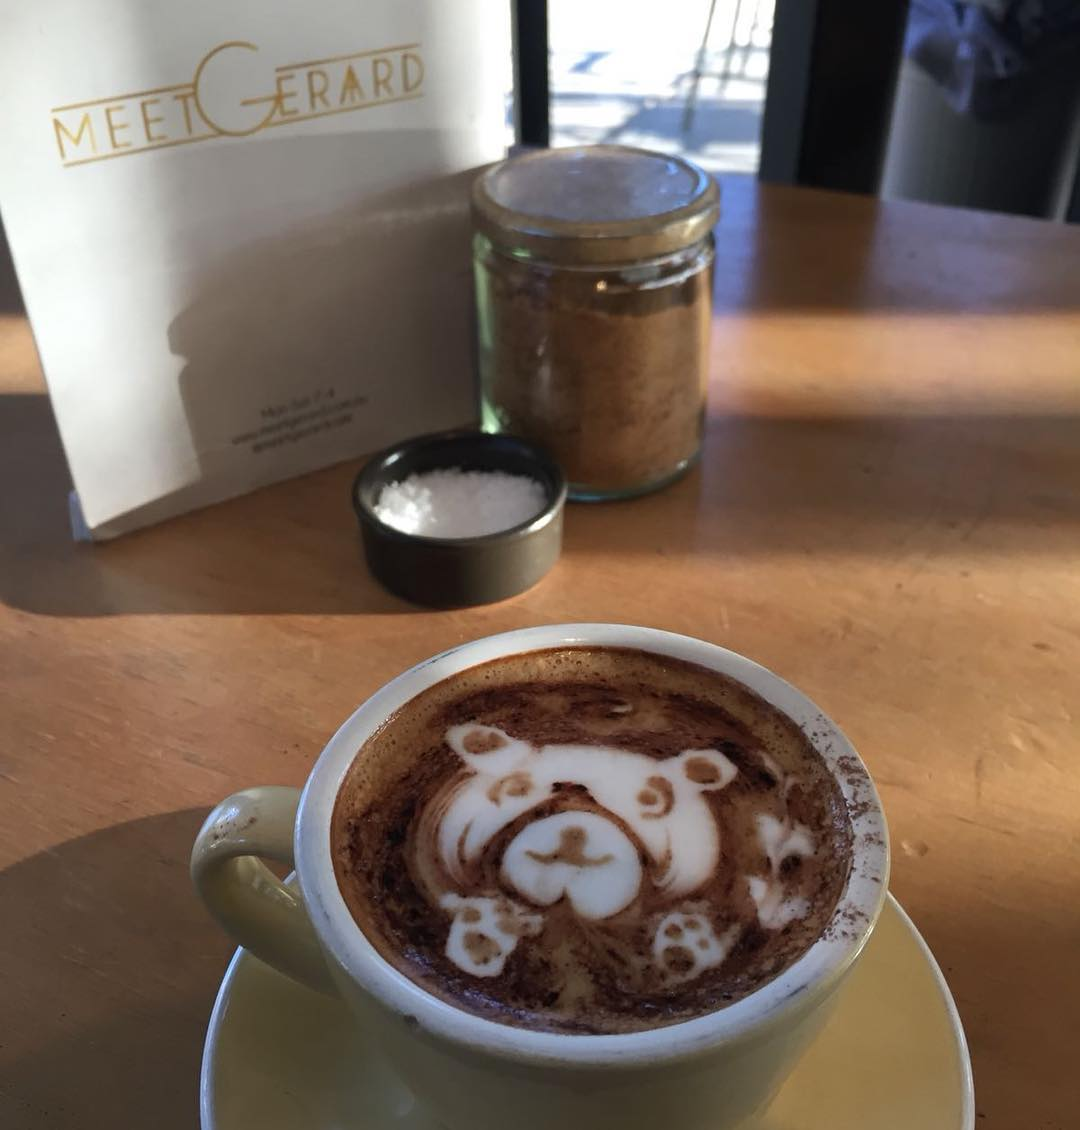 Cute teddy bear coffee art on a coffee at Meet Gerard cafe, one of the best cafes in Sydney according to GoGet members